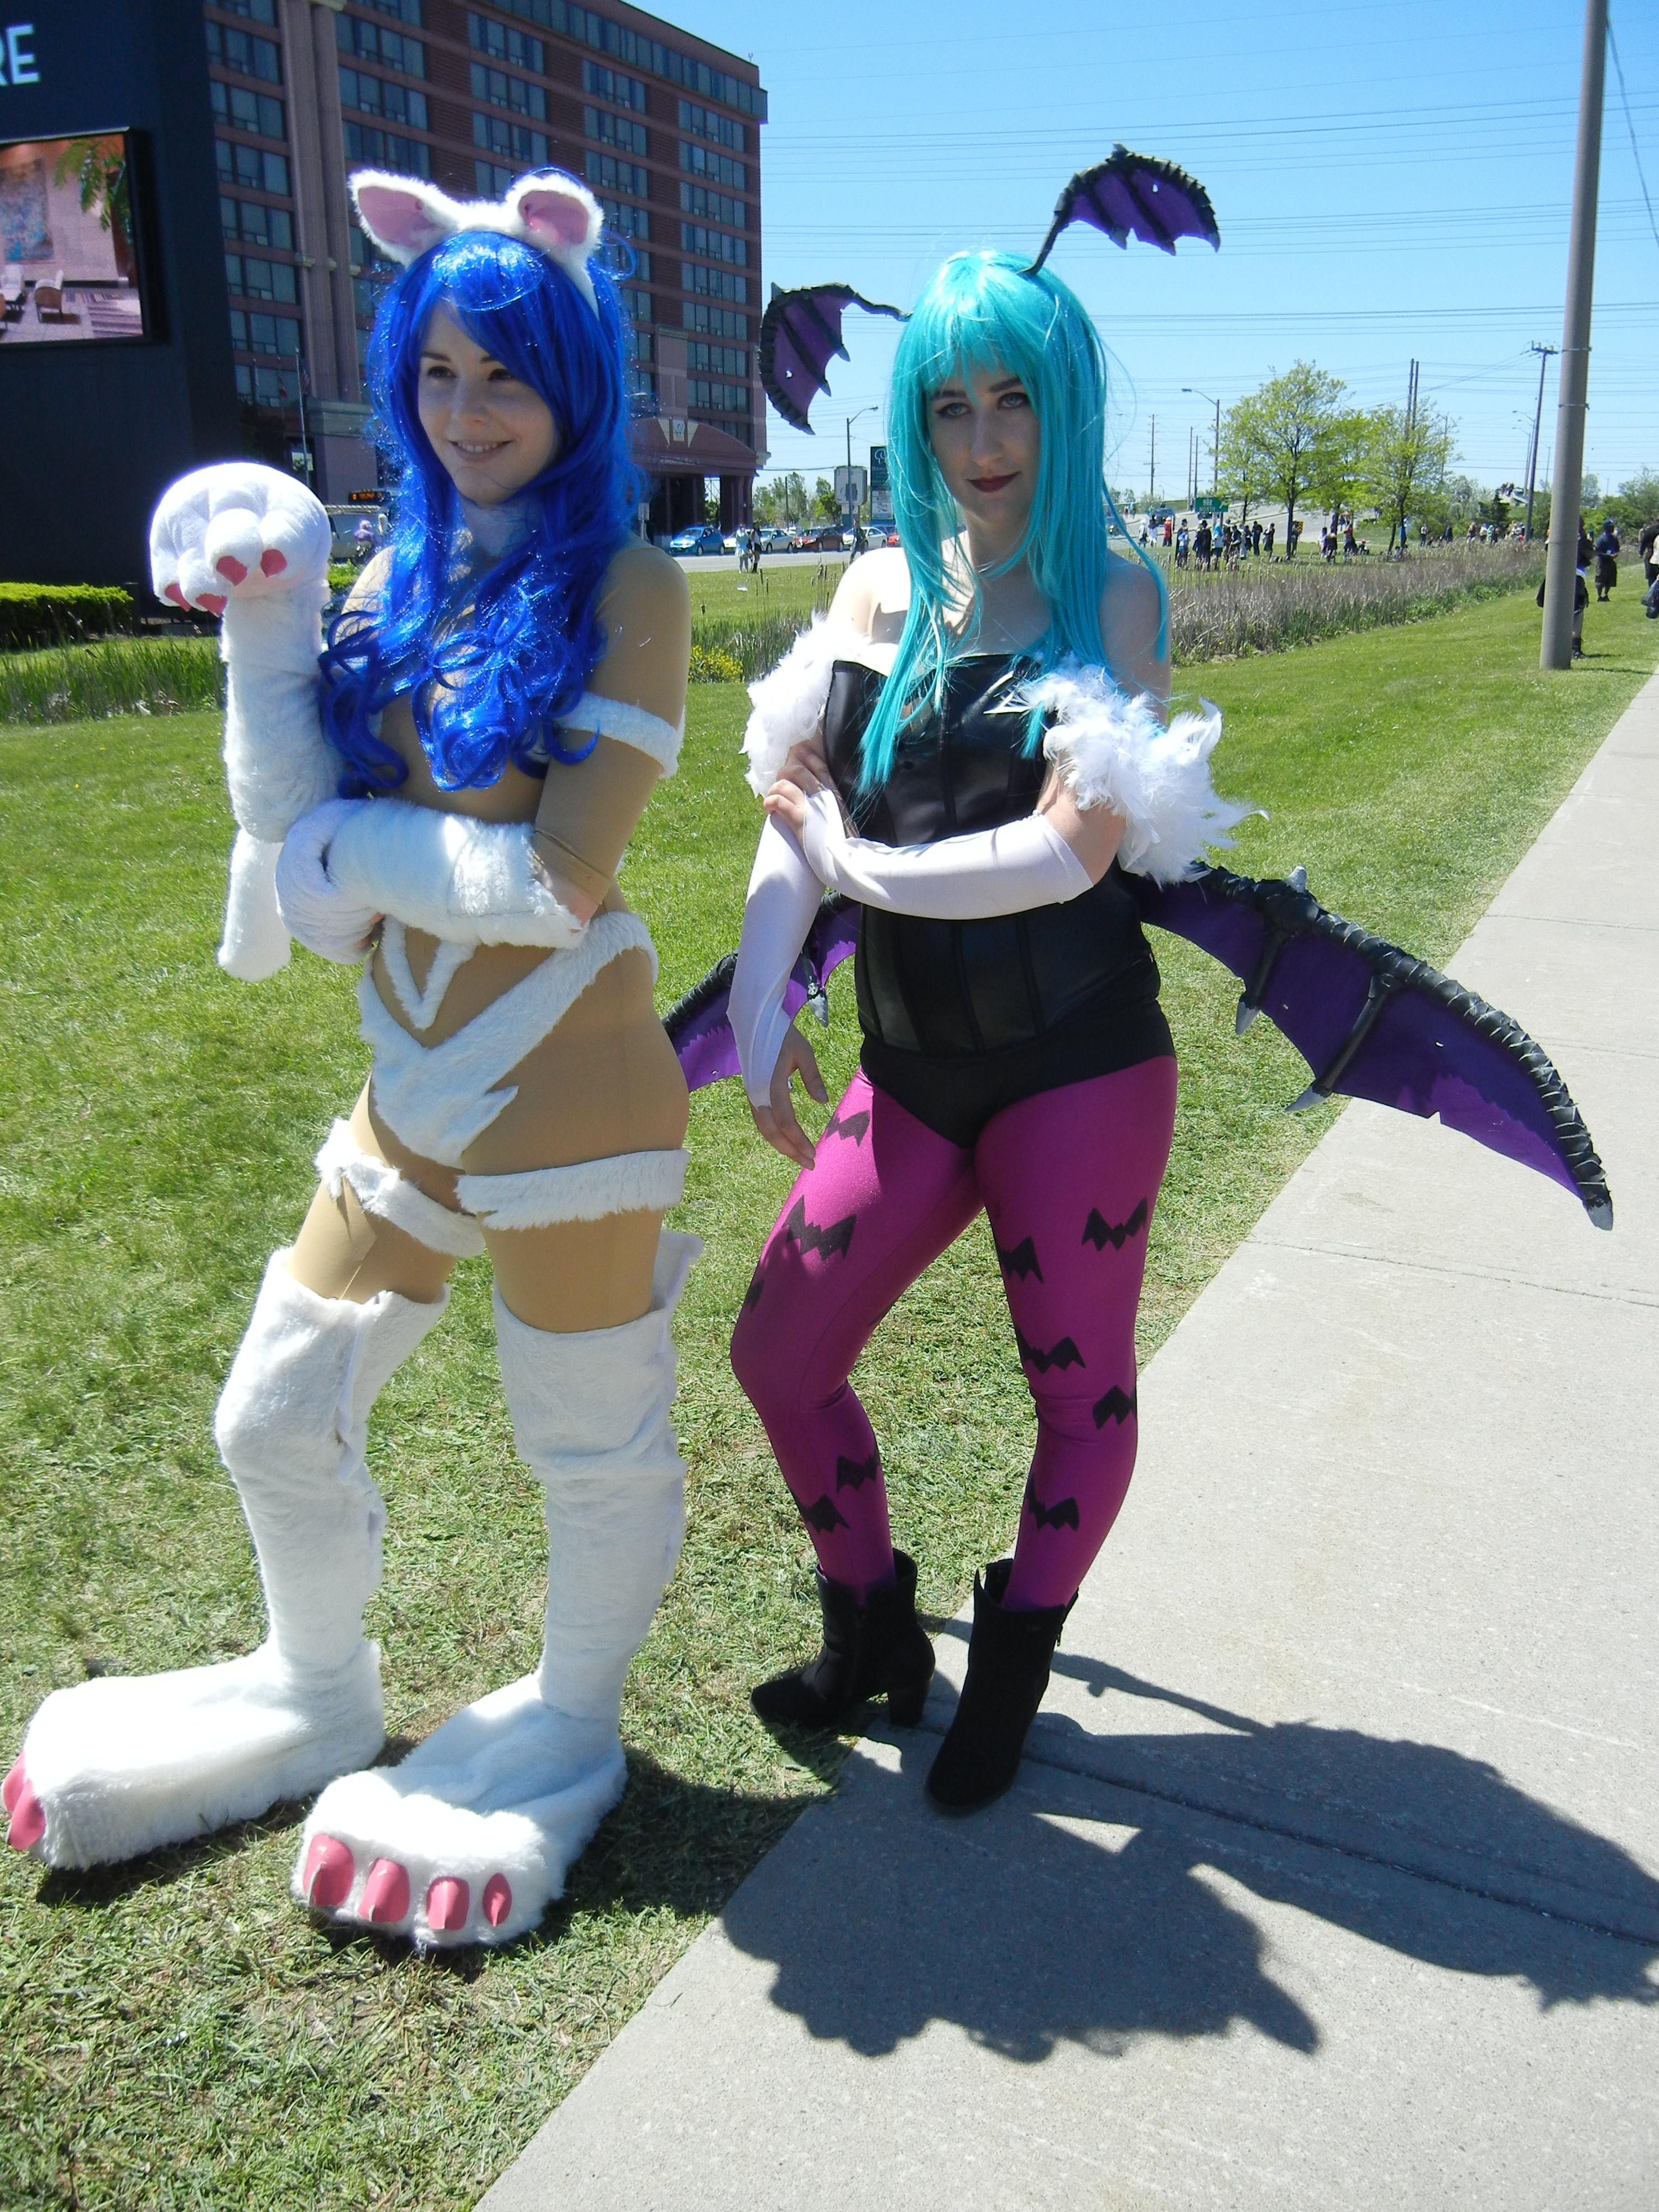 anime_north_2013___darkstalkers_cosplay_by_jmcclare-d66xv4z.jpg